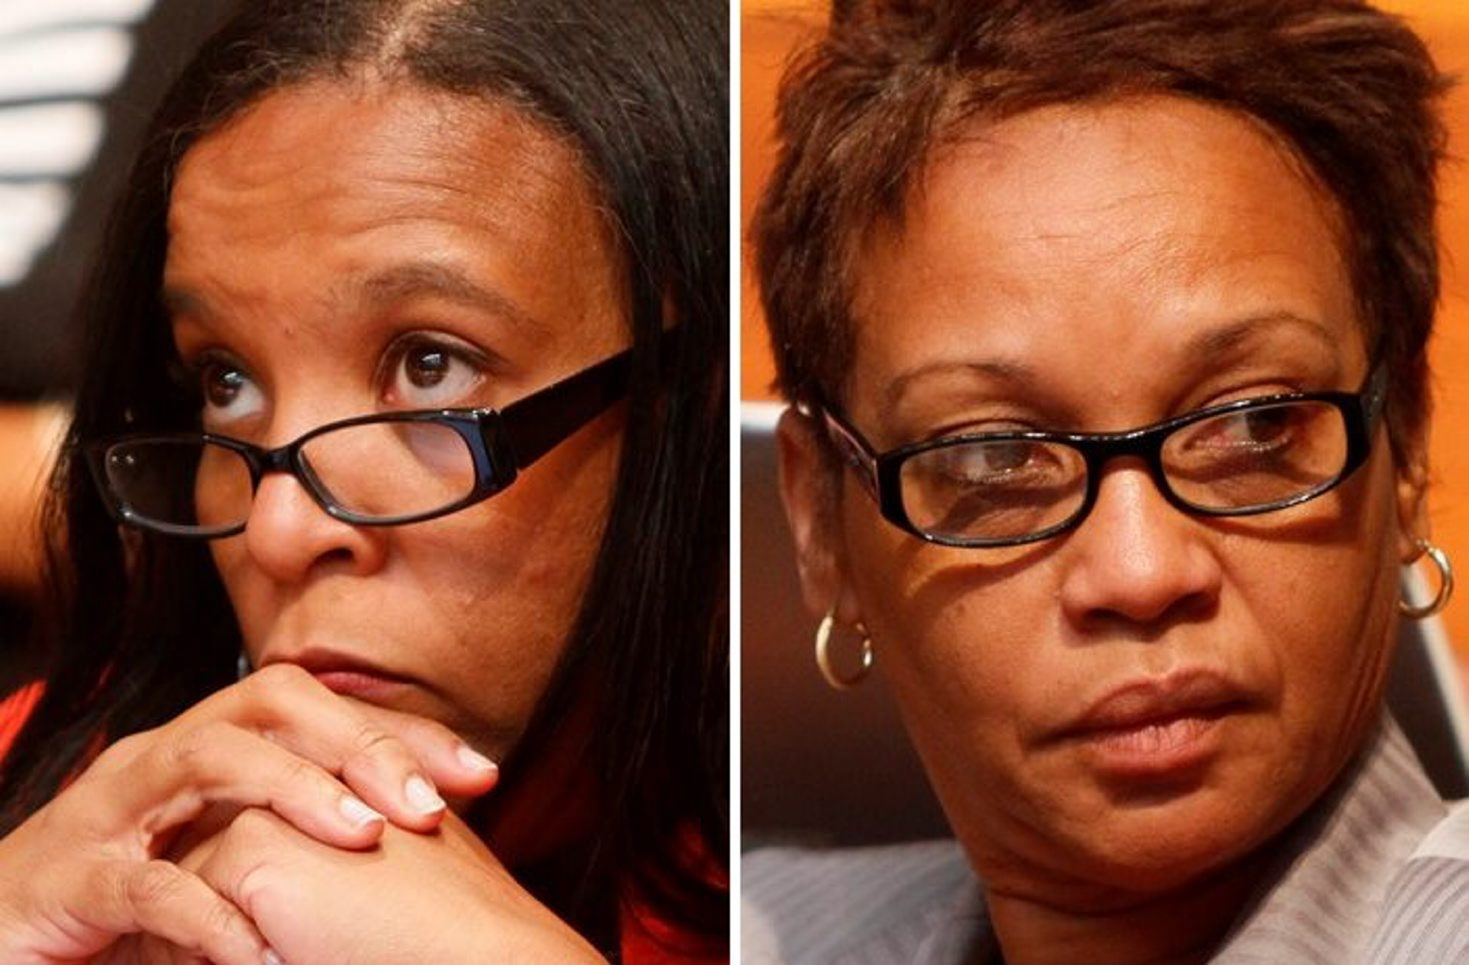 Yamilette Williams, left, is chief of curriculum, assessment and instruction. Faith Morrison Alexander oversees school leadership.